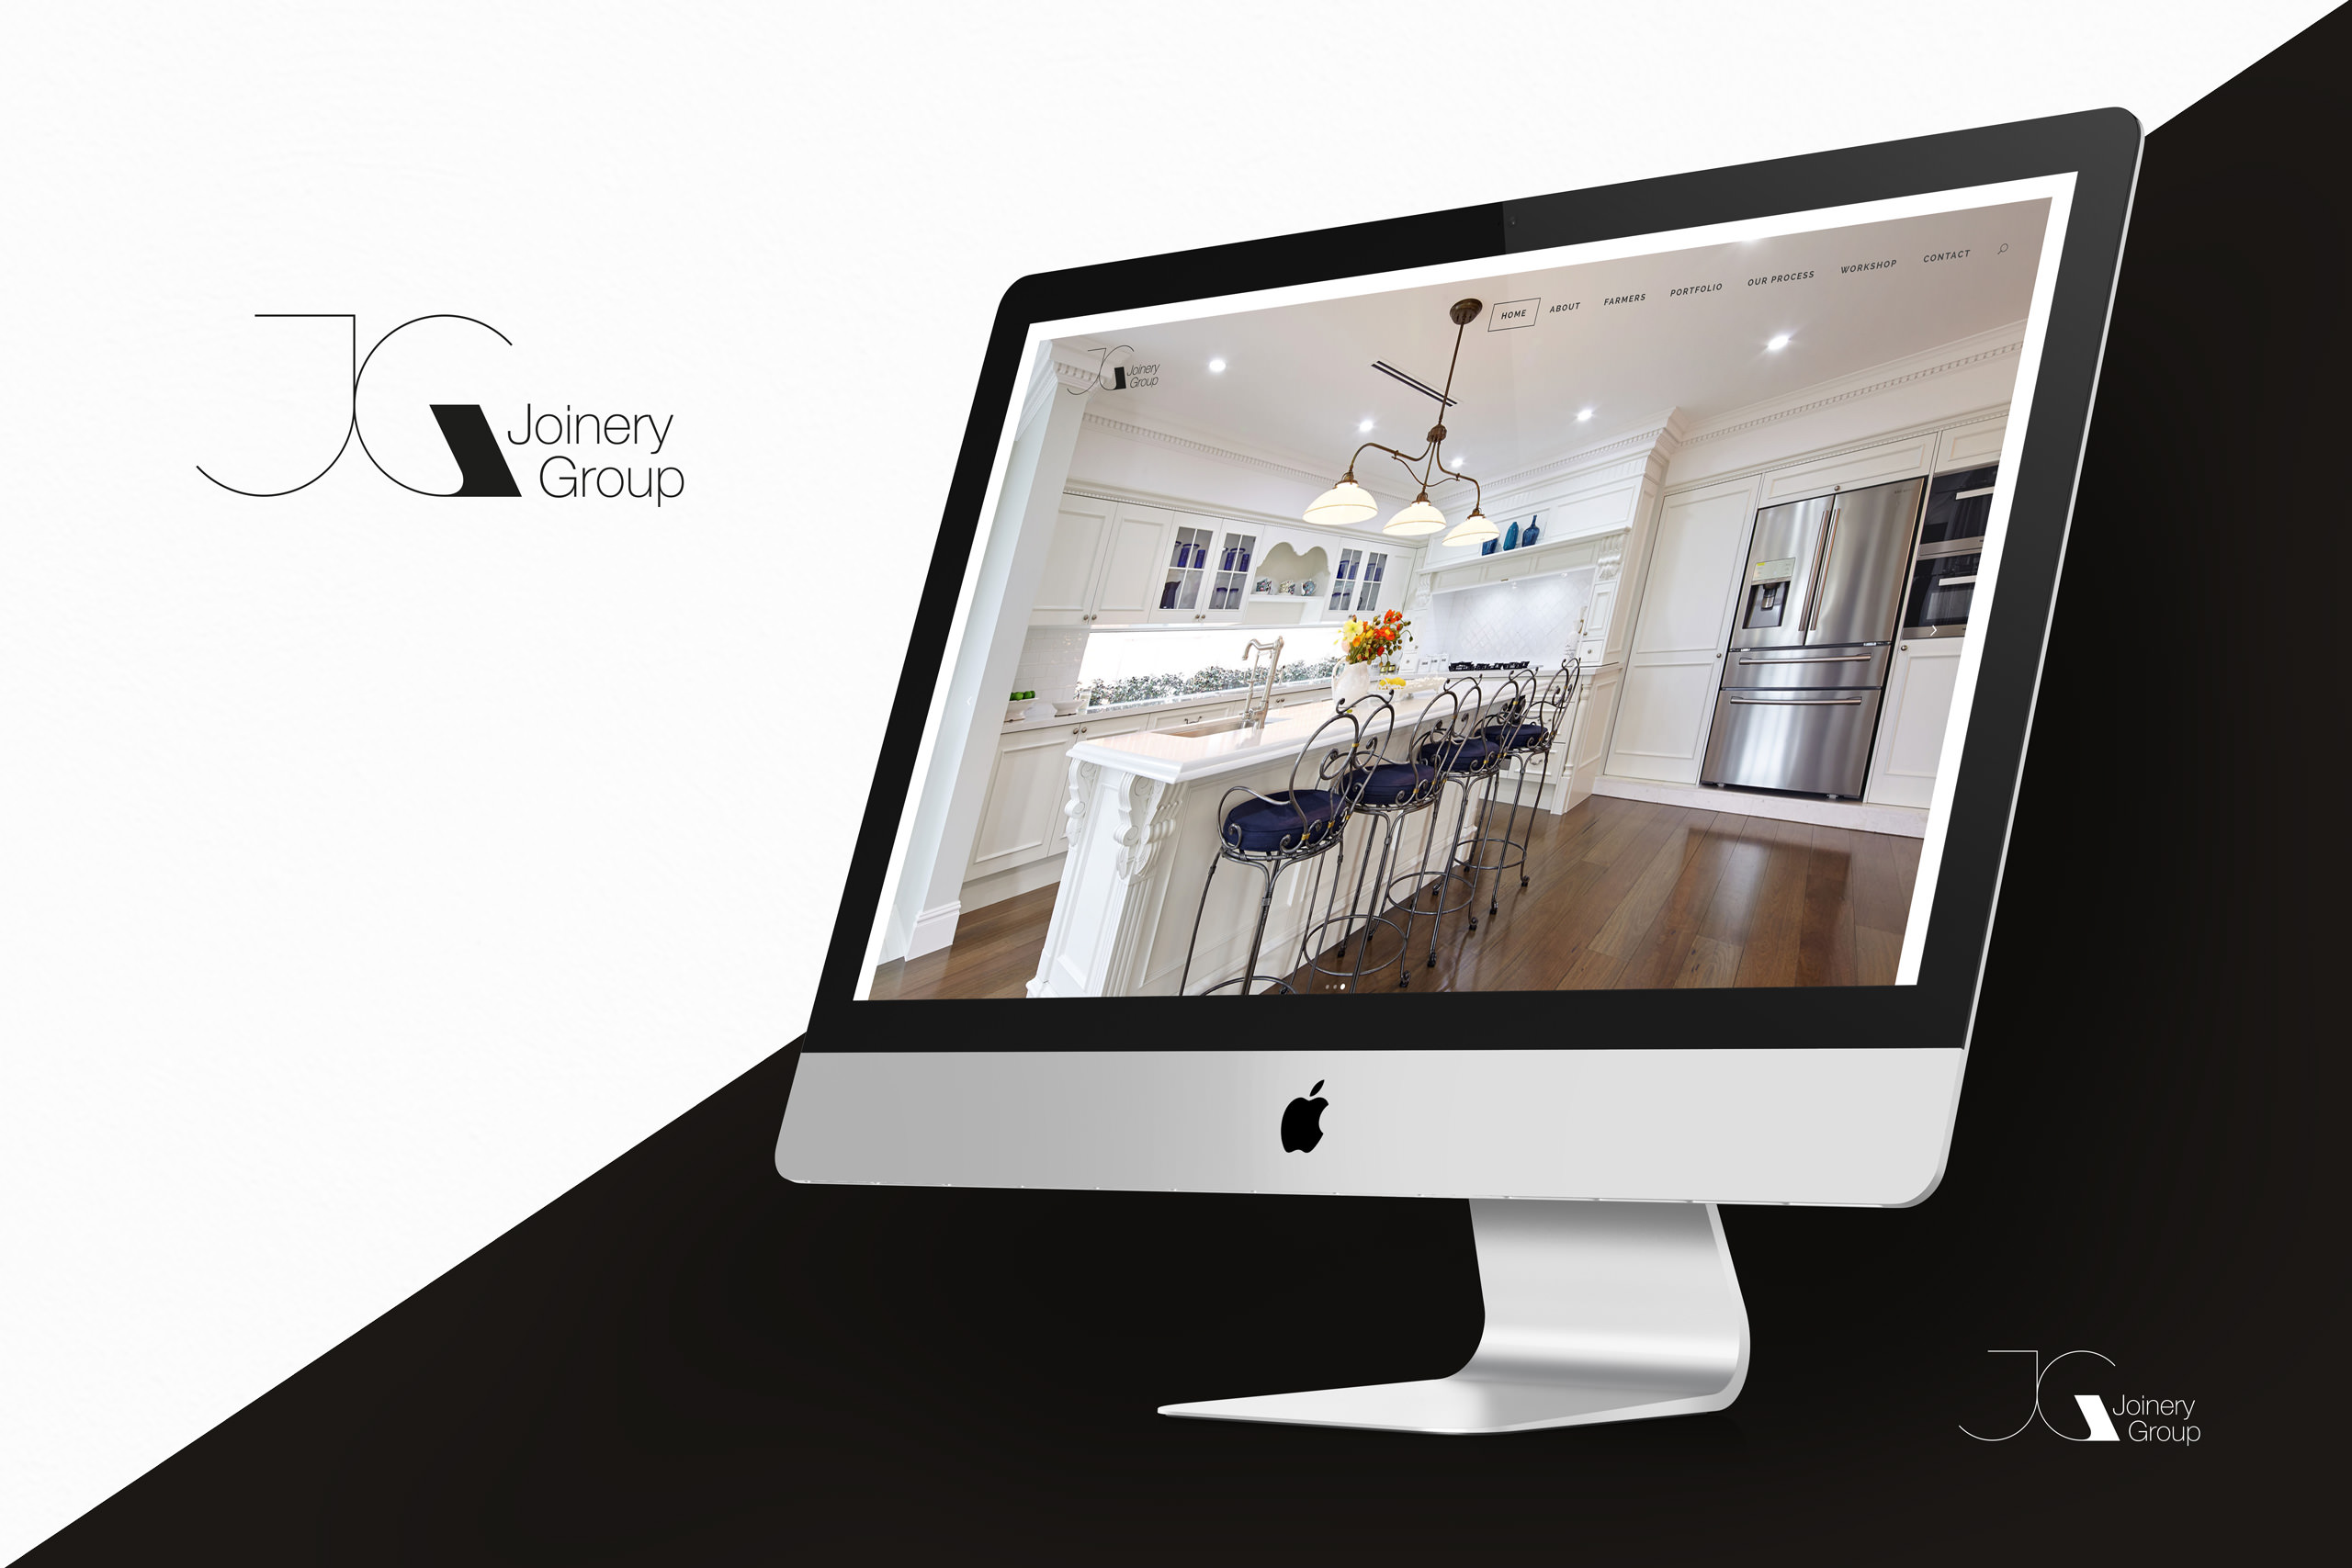 Joinery Group Website Design